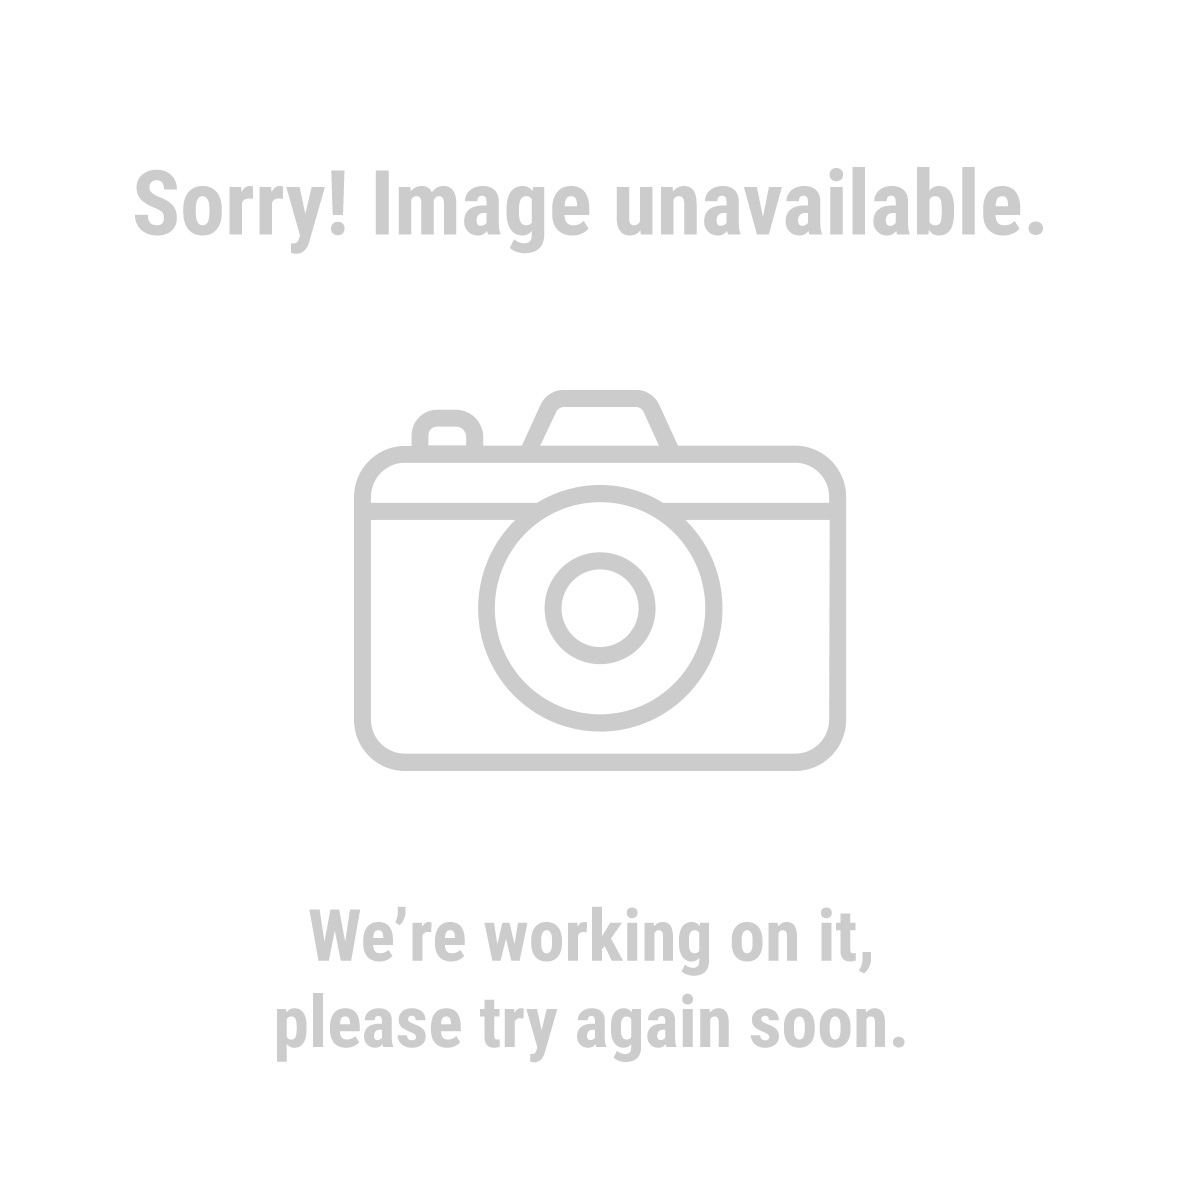 Western Safety 62606 Dust and Particle Mask 5 Pk.